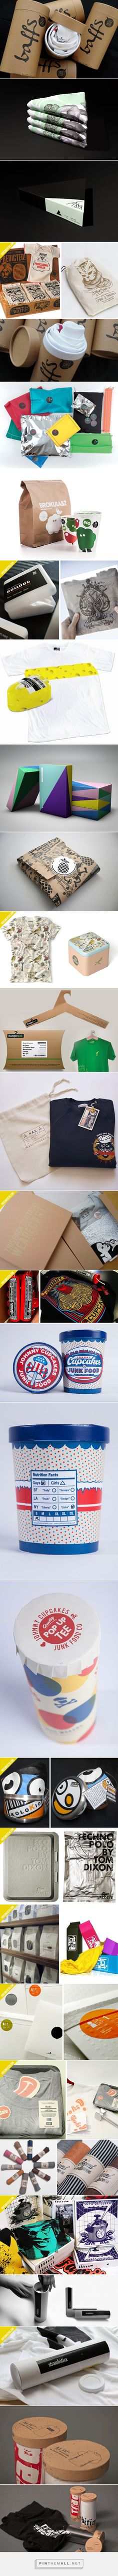 25 Cool T-shirt Packaging Design Examples – Part 2 - Printsome Blog - created via http://pinthemall.net